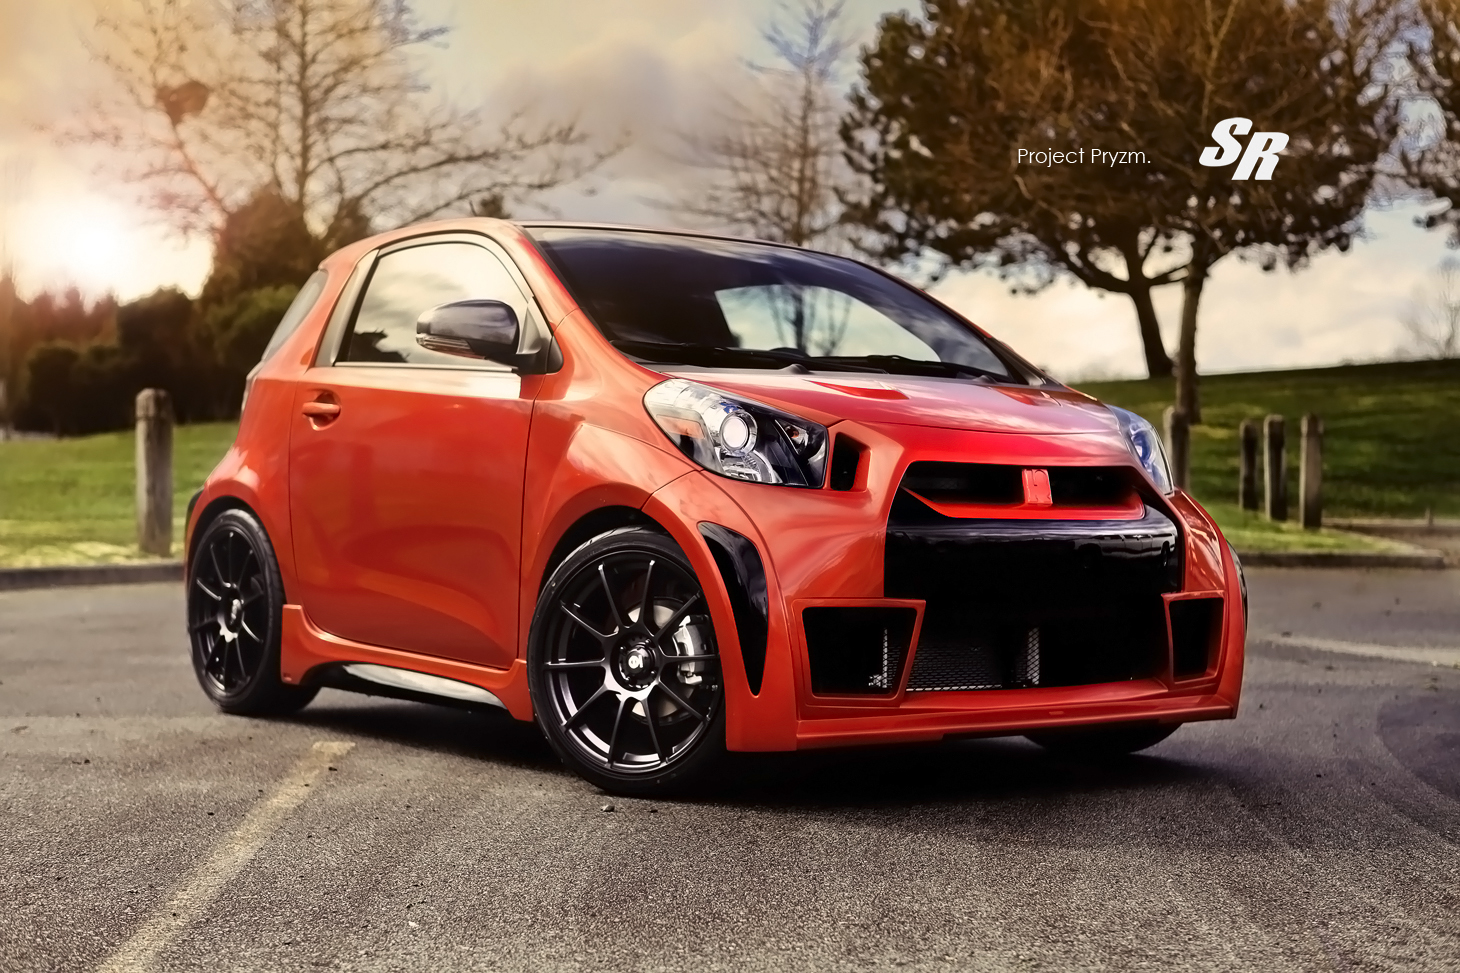 Worksheet. 2012 Scion IQ Project Pryzm By SR Auto Group Review  Gallery